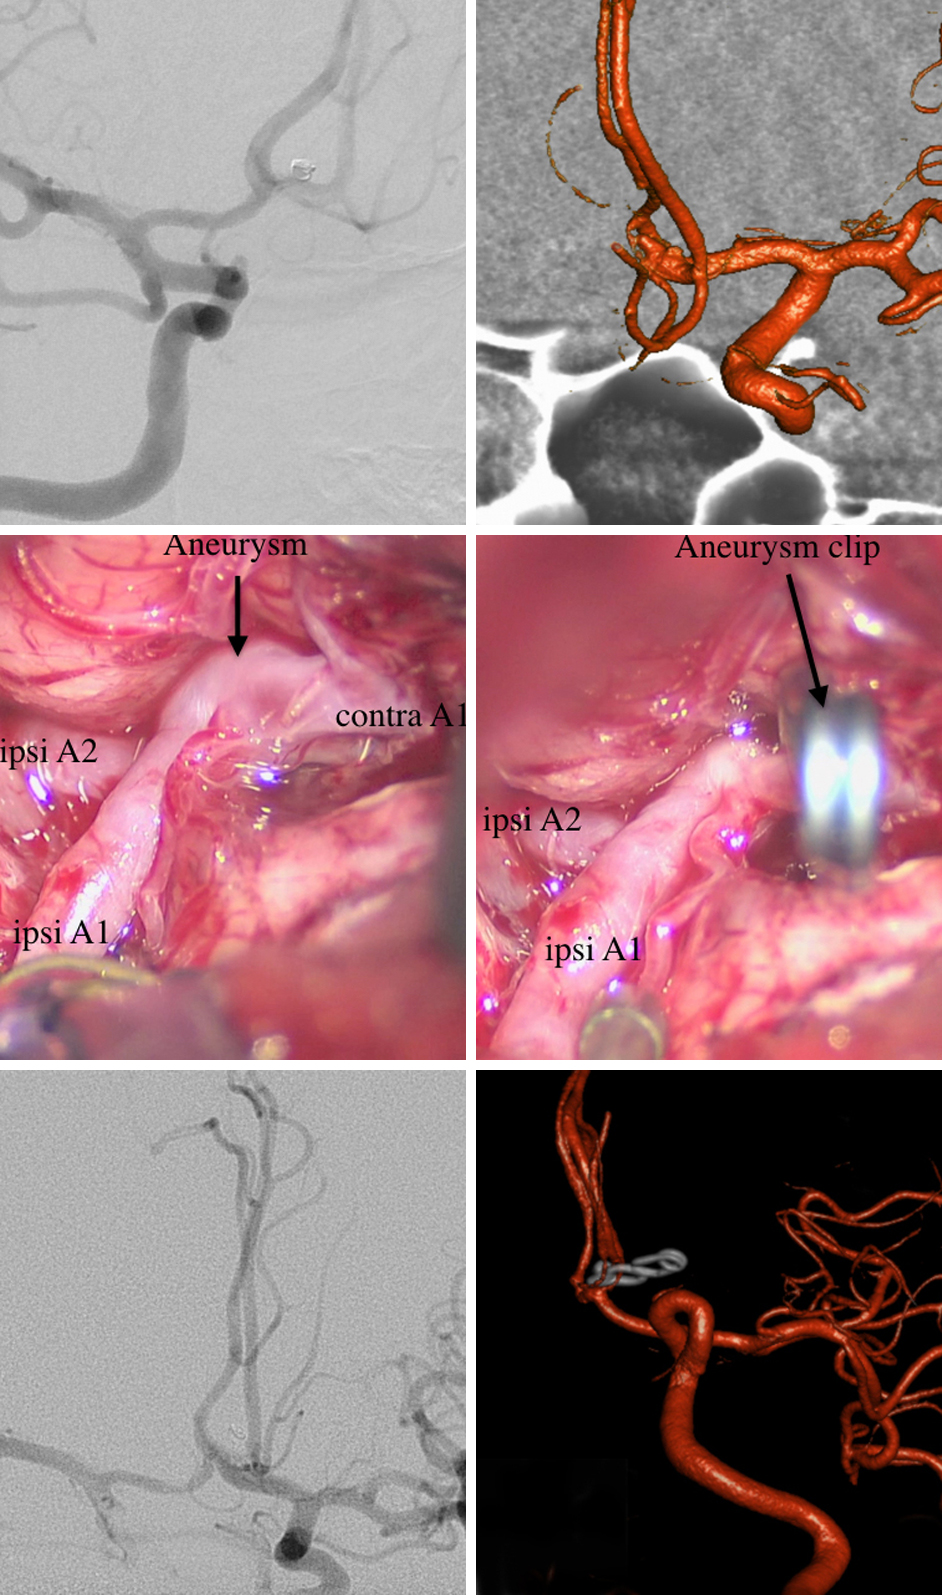 Figure 14: Angiography performed at the time of the initial coiling is shown (top, left). The patient presented three year later with recurrent SAH and persistent minimal residual filling of the aneurysm. Intraoperative picture of the aneurysm before (middle, left) and after clipping (middle, right) are included. Postoperative angiography confirmed complete obliteration of the aneurysm (bottom images).